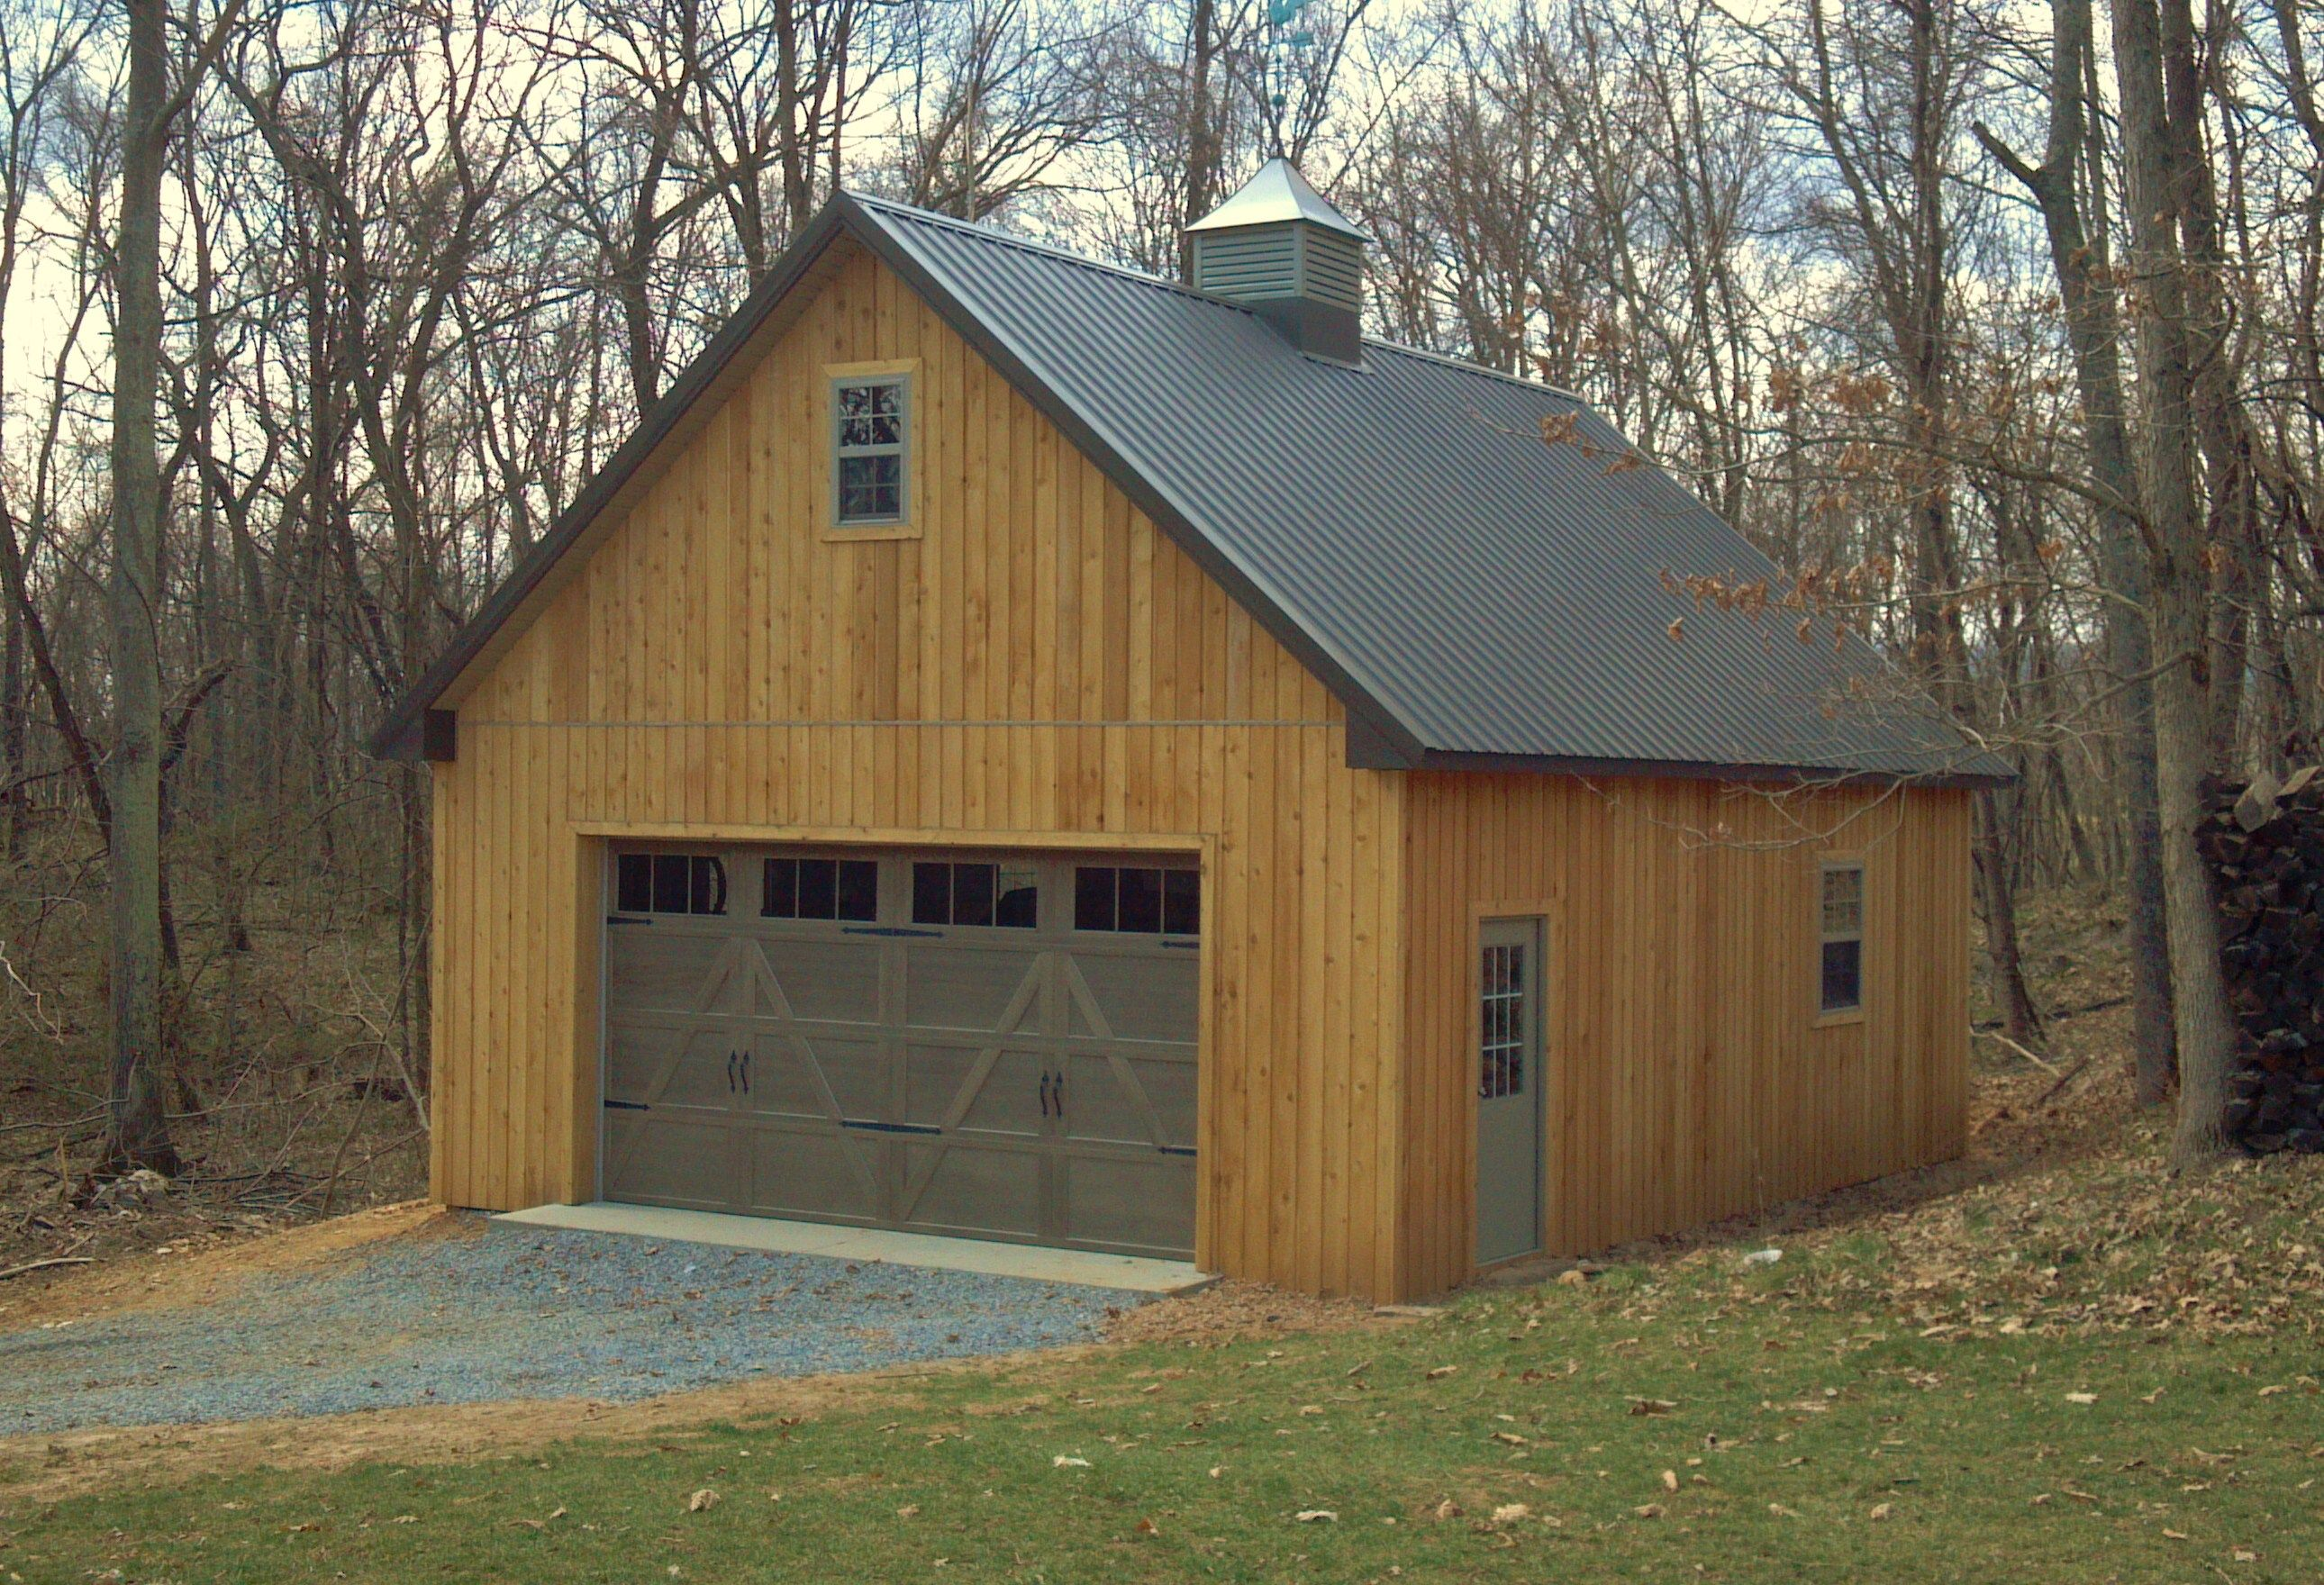 Pin by Luke Oeth on Barn in 2020 Garage prices, Garage